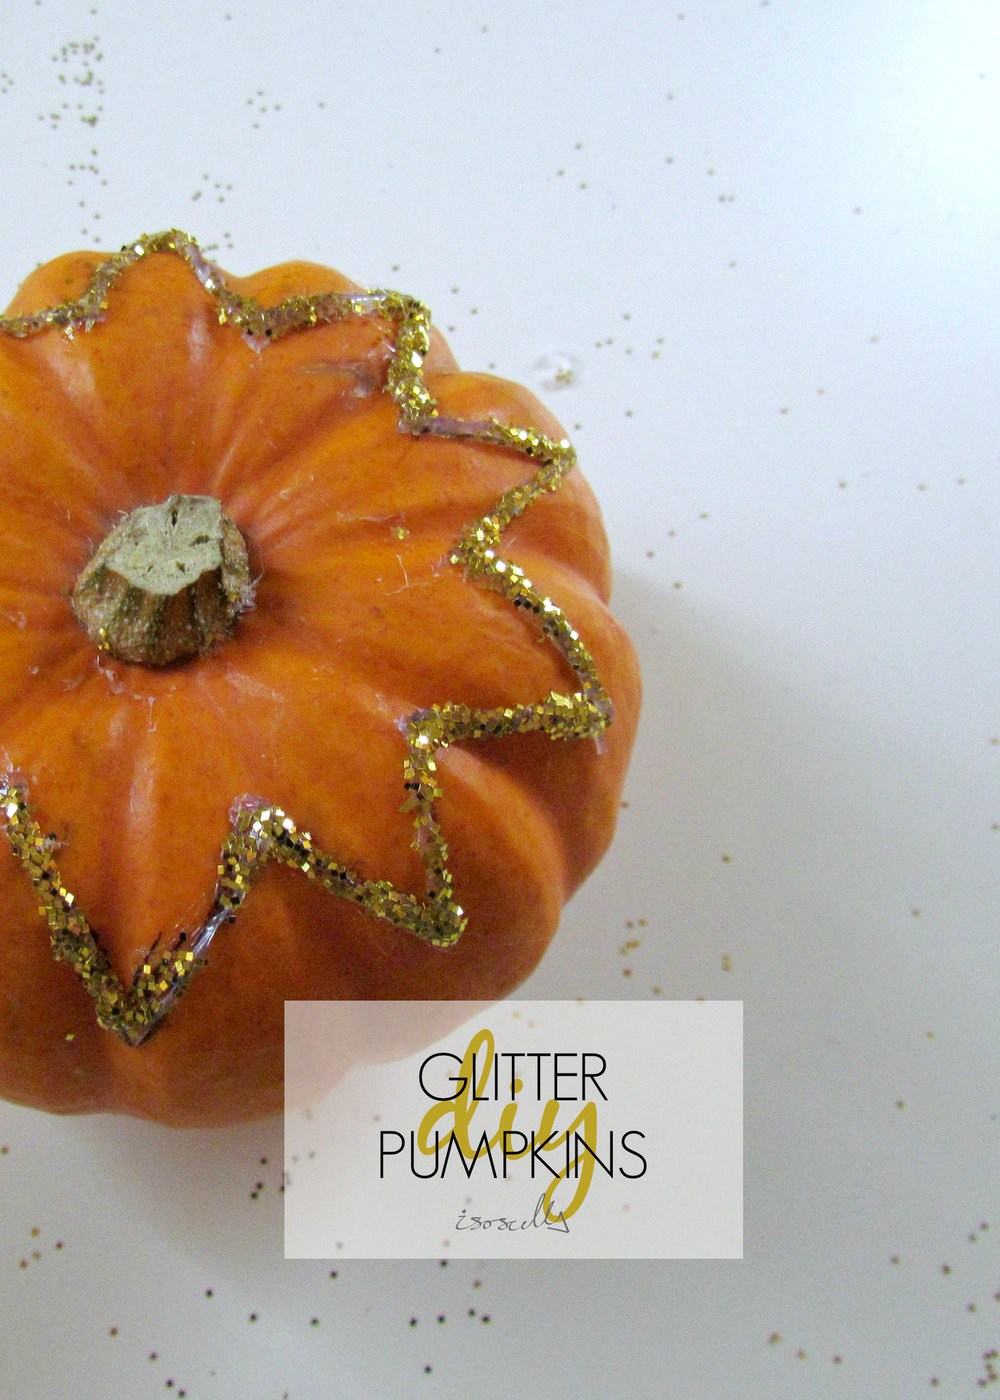 DIY Glitter Pumpkin by Isoscella